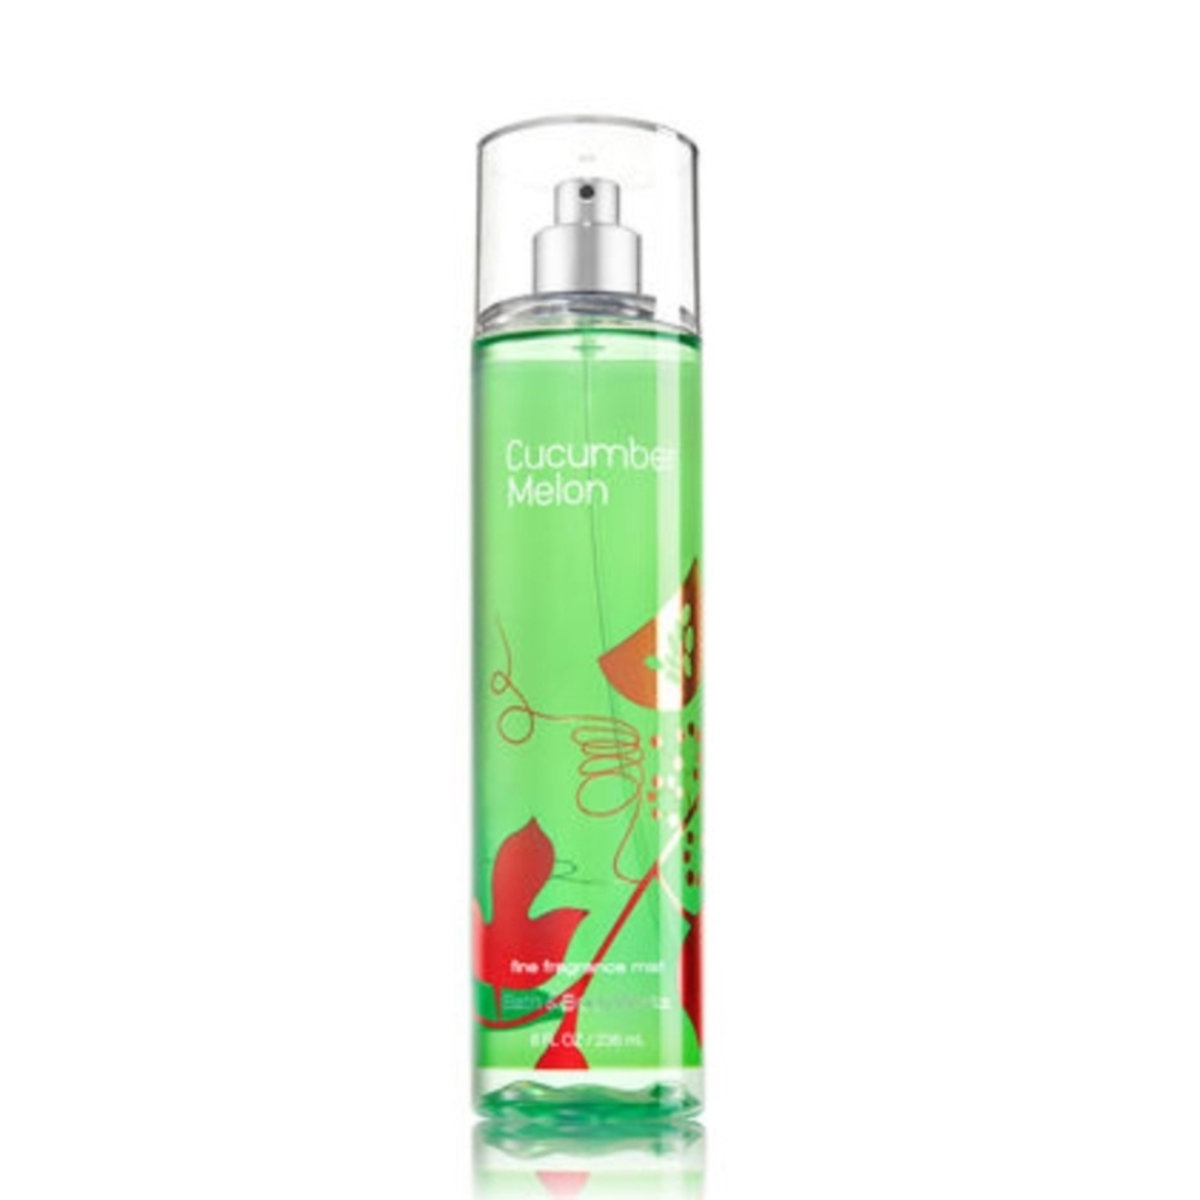 CUCUMBER MELON Fine Fragrance Mist  (Parallel Imports Product)